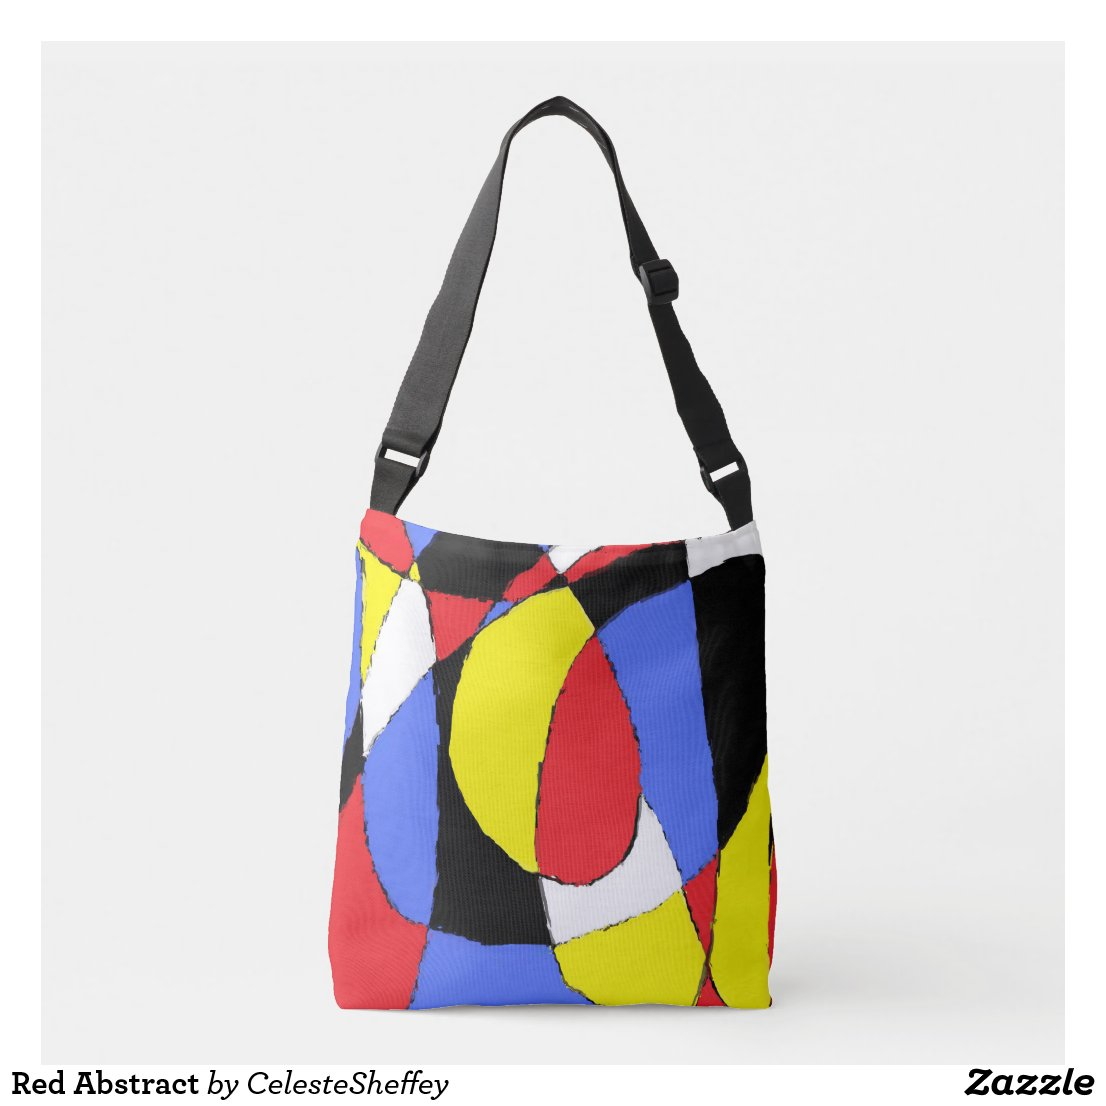 Red, Yellow, Black and Blue Abstract 8230 Crossbody Bag